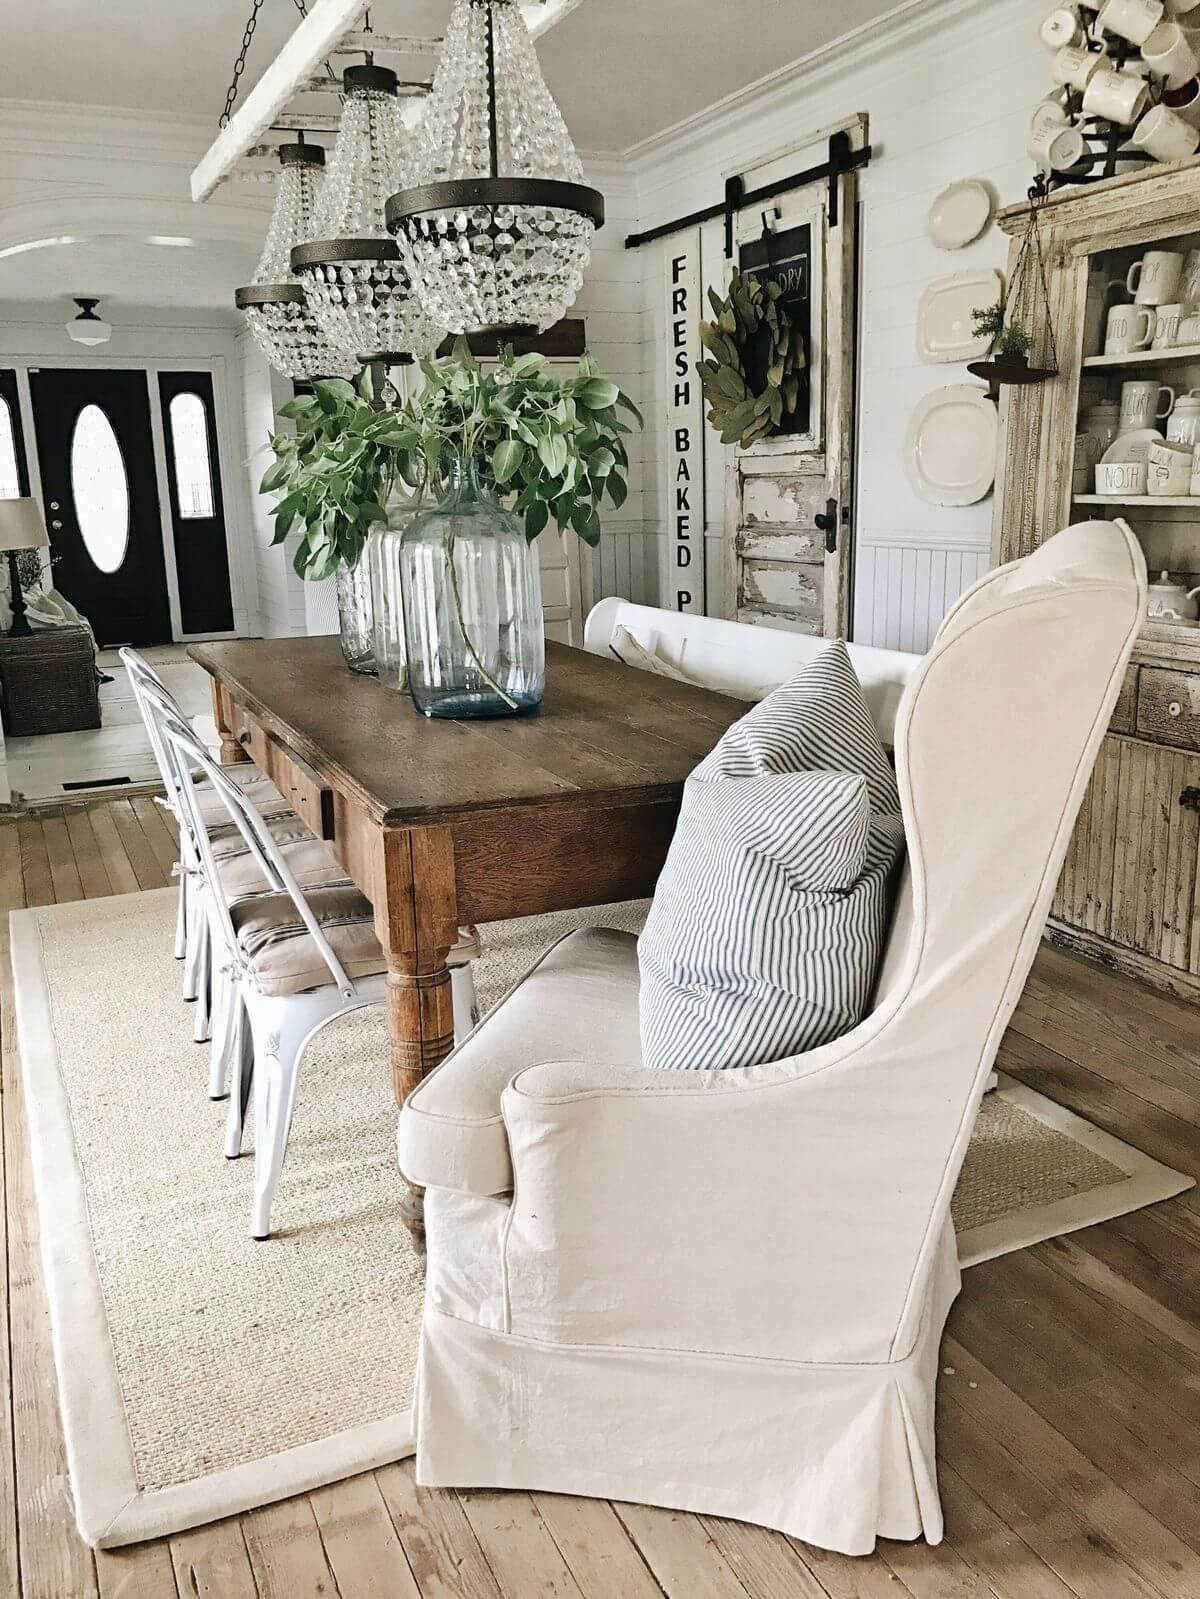 A Little Shabby but Mostly Chic